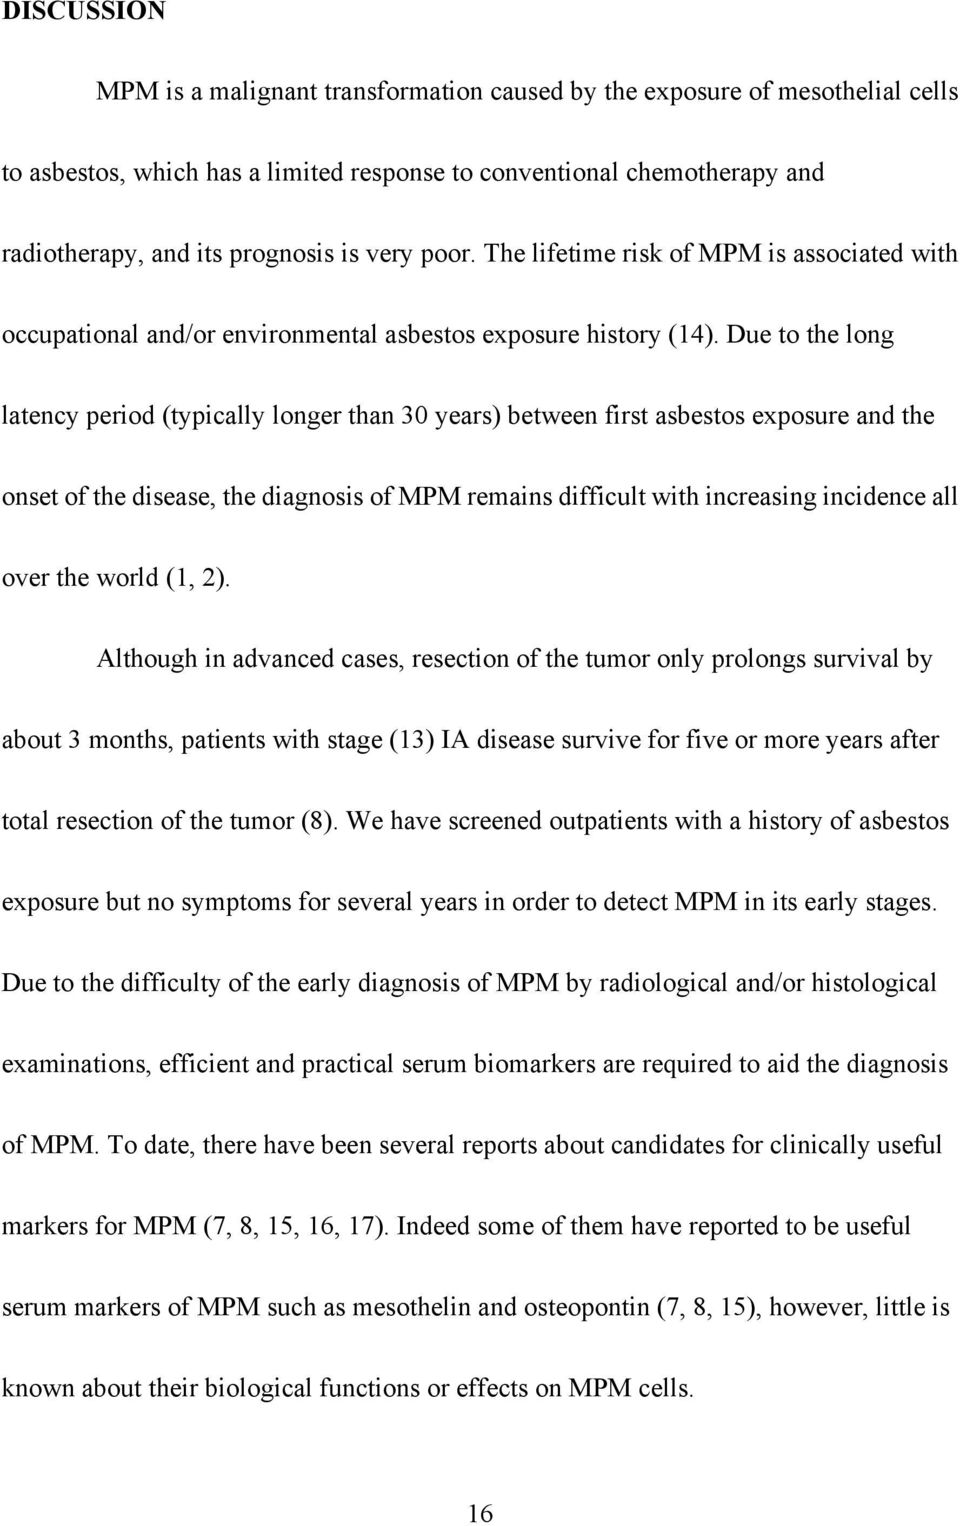 Due to the long latency period (typically longer than 30 years) between first asbestos exposure and the onset of the disease, the diagnosis of MPM remains difficult with increasing incidence all over